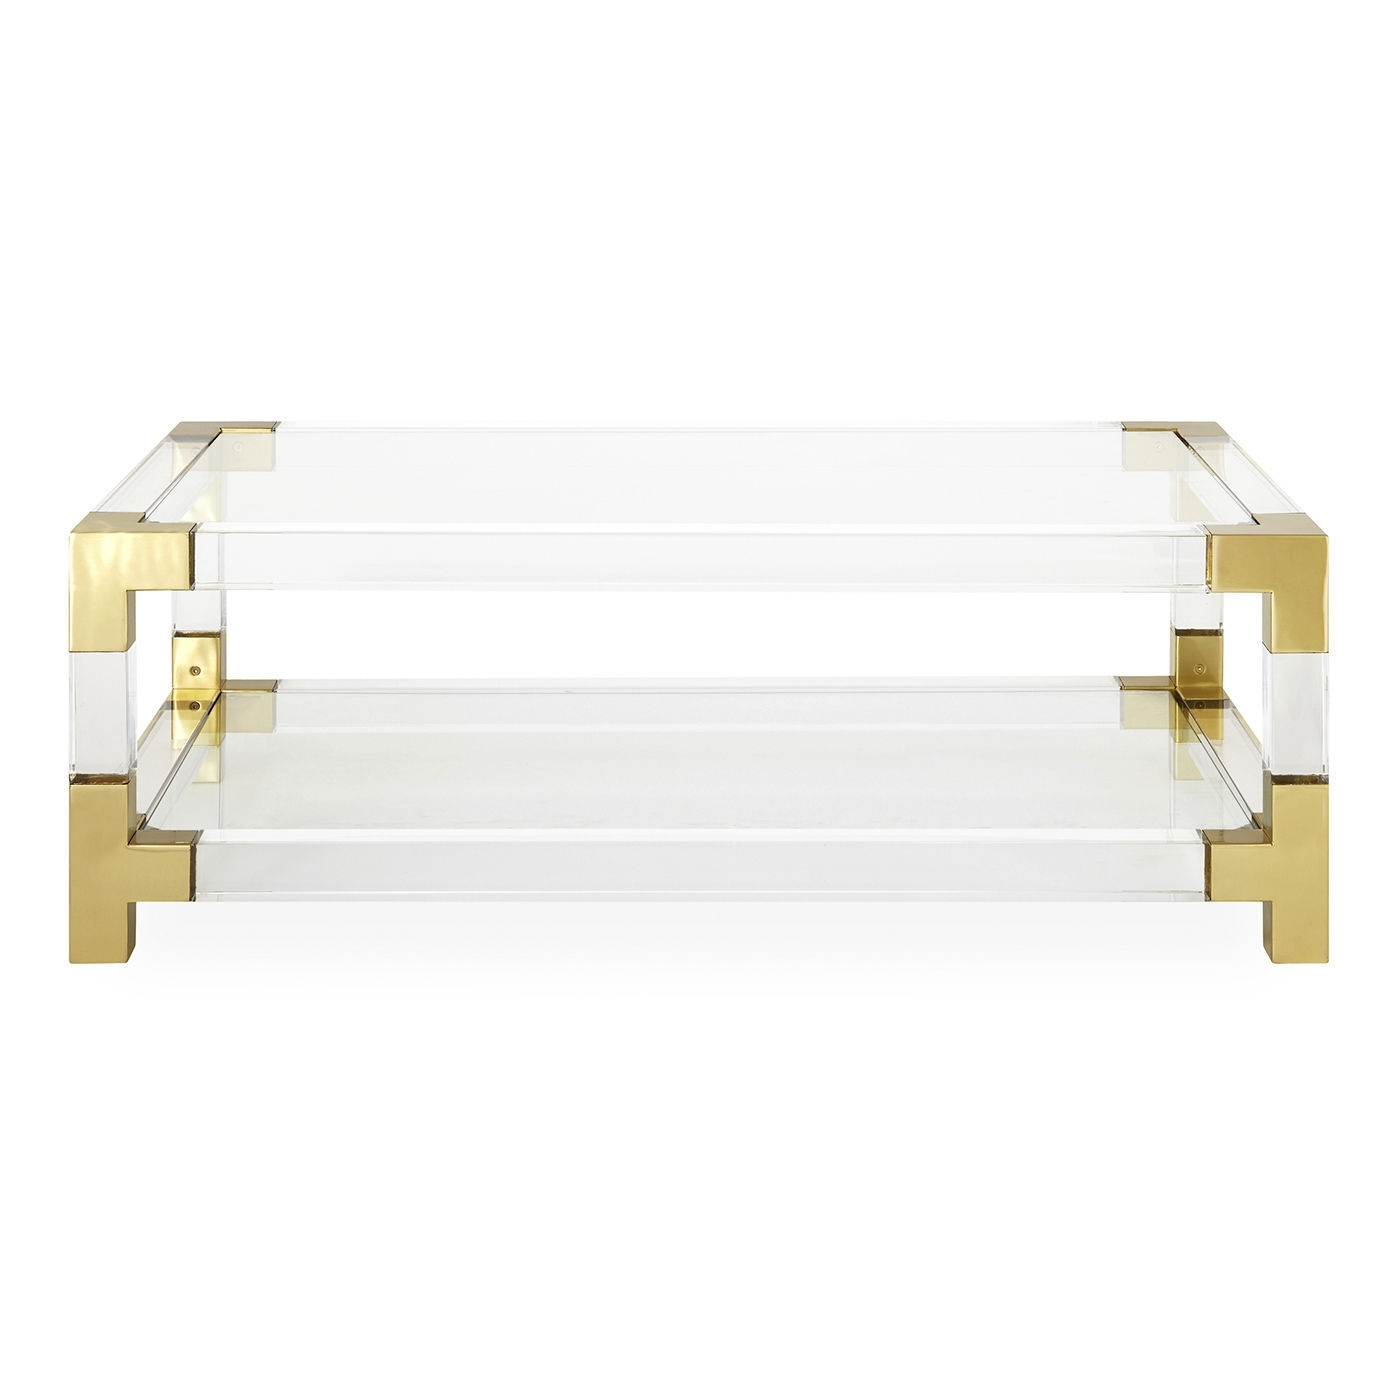 Well Liked Acrylic & Brushed Brass Coffee Tables With Regard To Contemporary Coffee Table / Glass / Brushed Brass / Acrylic (View 11 of 20)